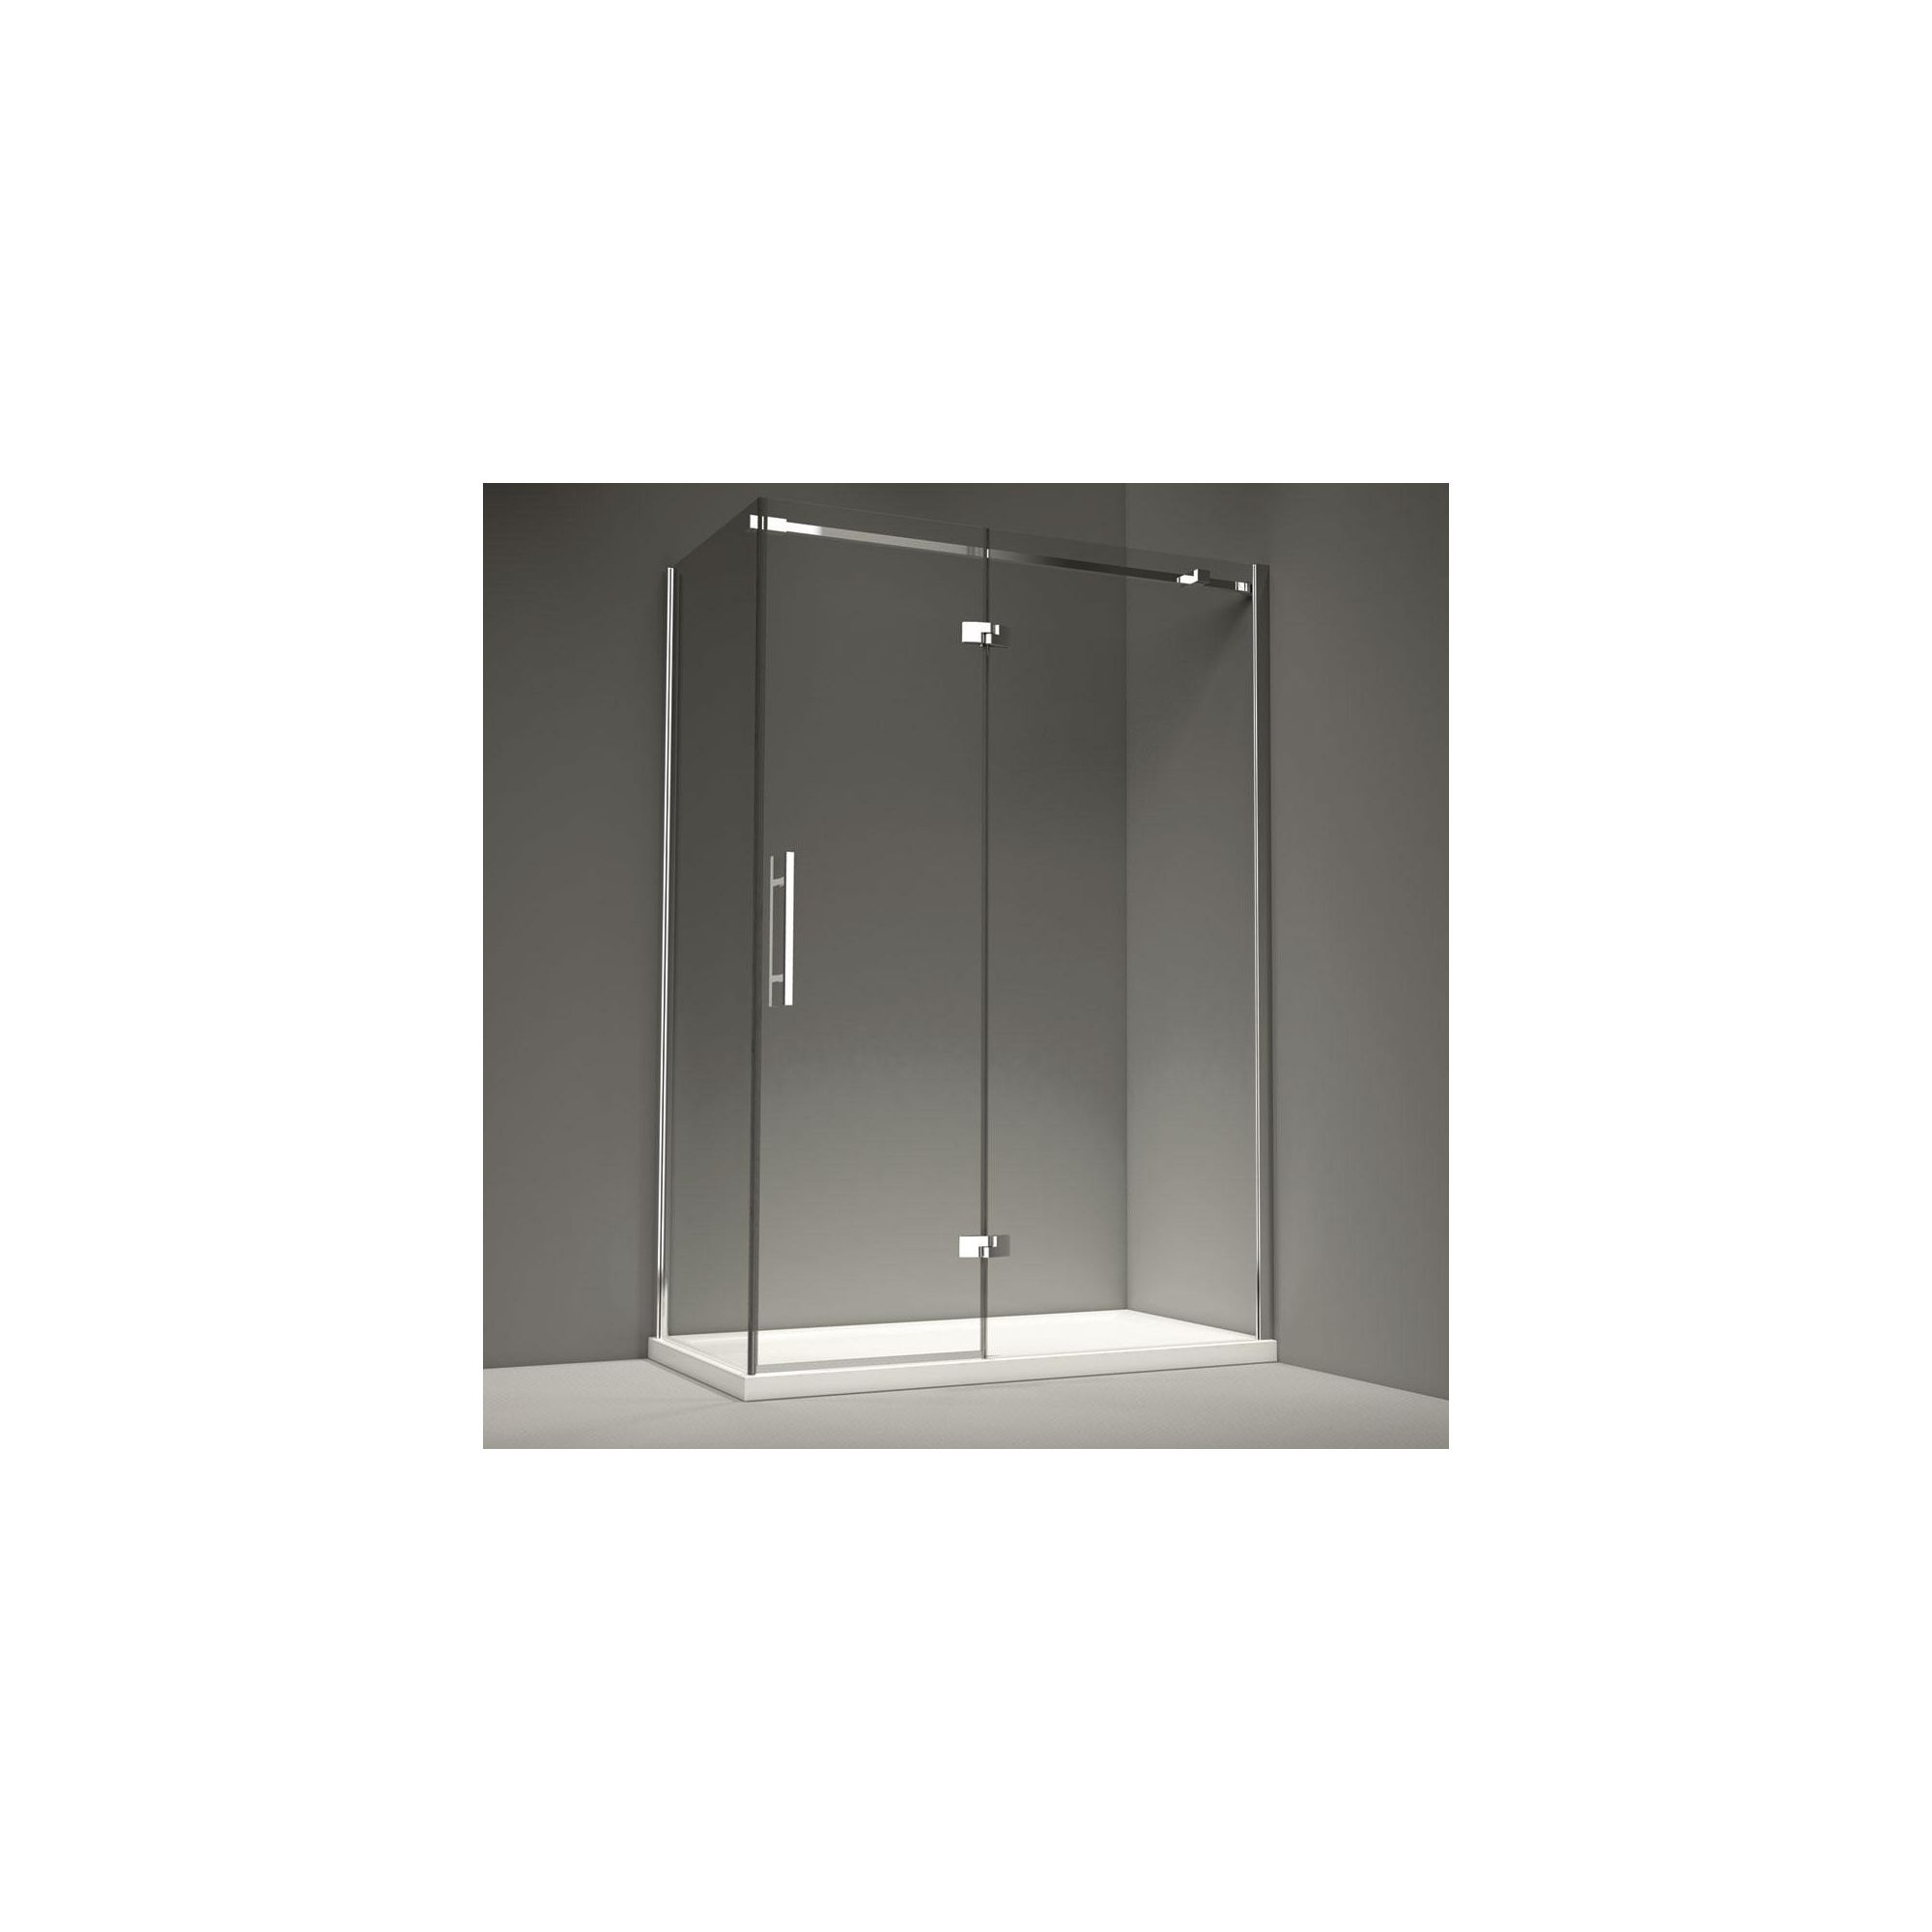 Merlyn Series 9 Inline Hinged Shower Door, 900mm Wide, 8mm Glass, Right Handed at Tesco Direct